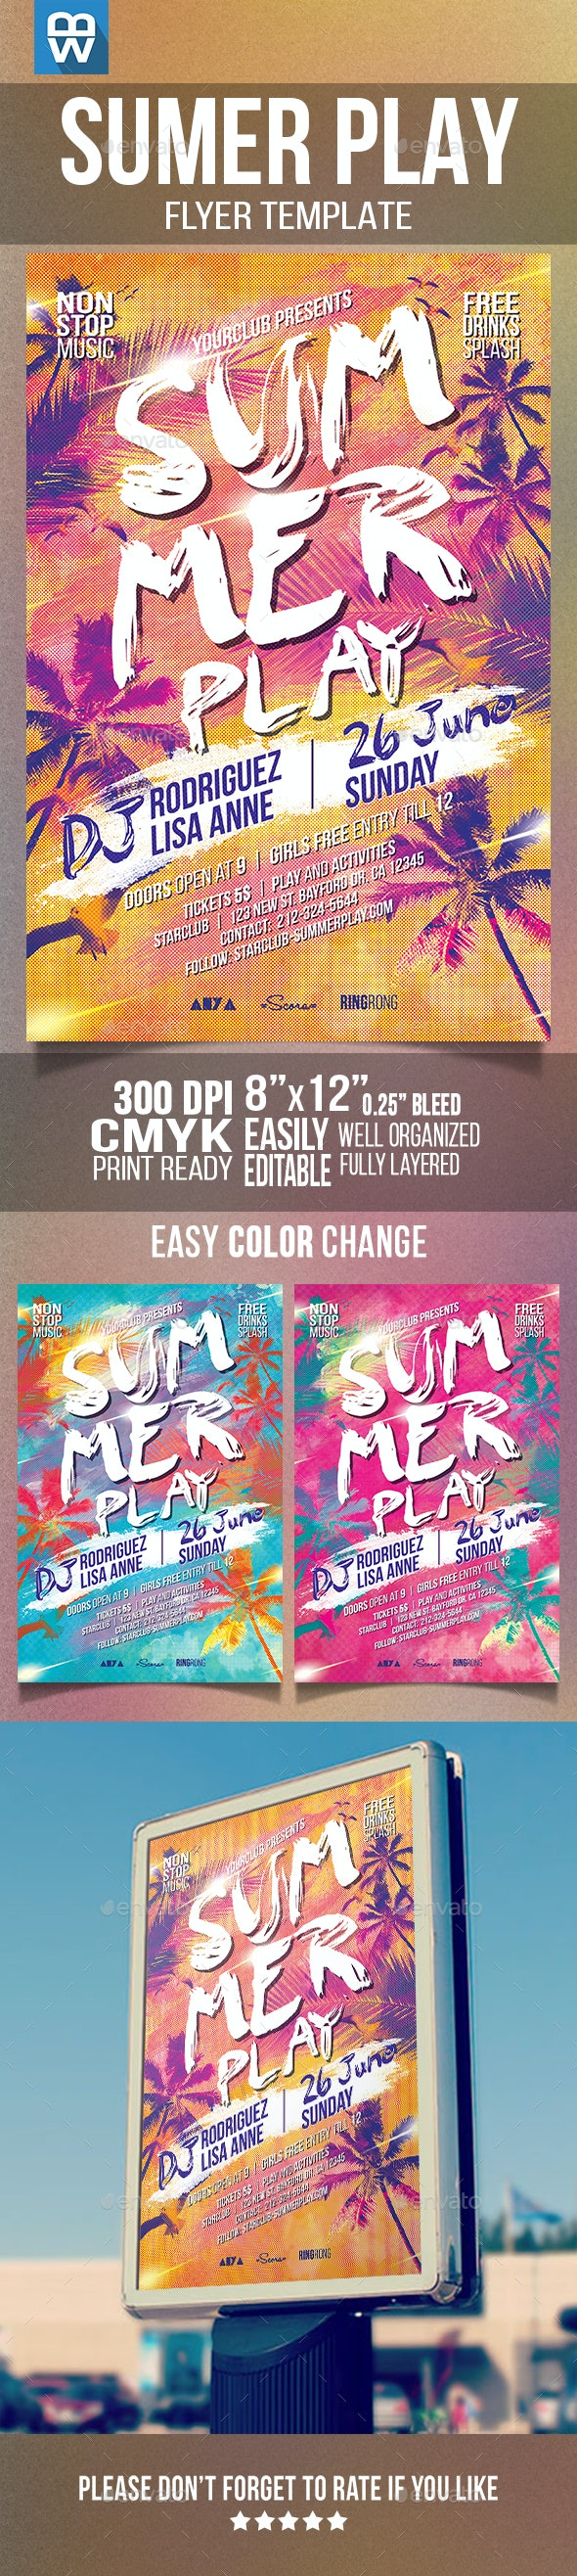 Summer Play Flyer Template - Clubs & Parties Events